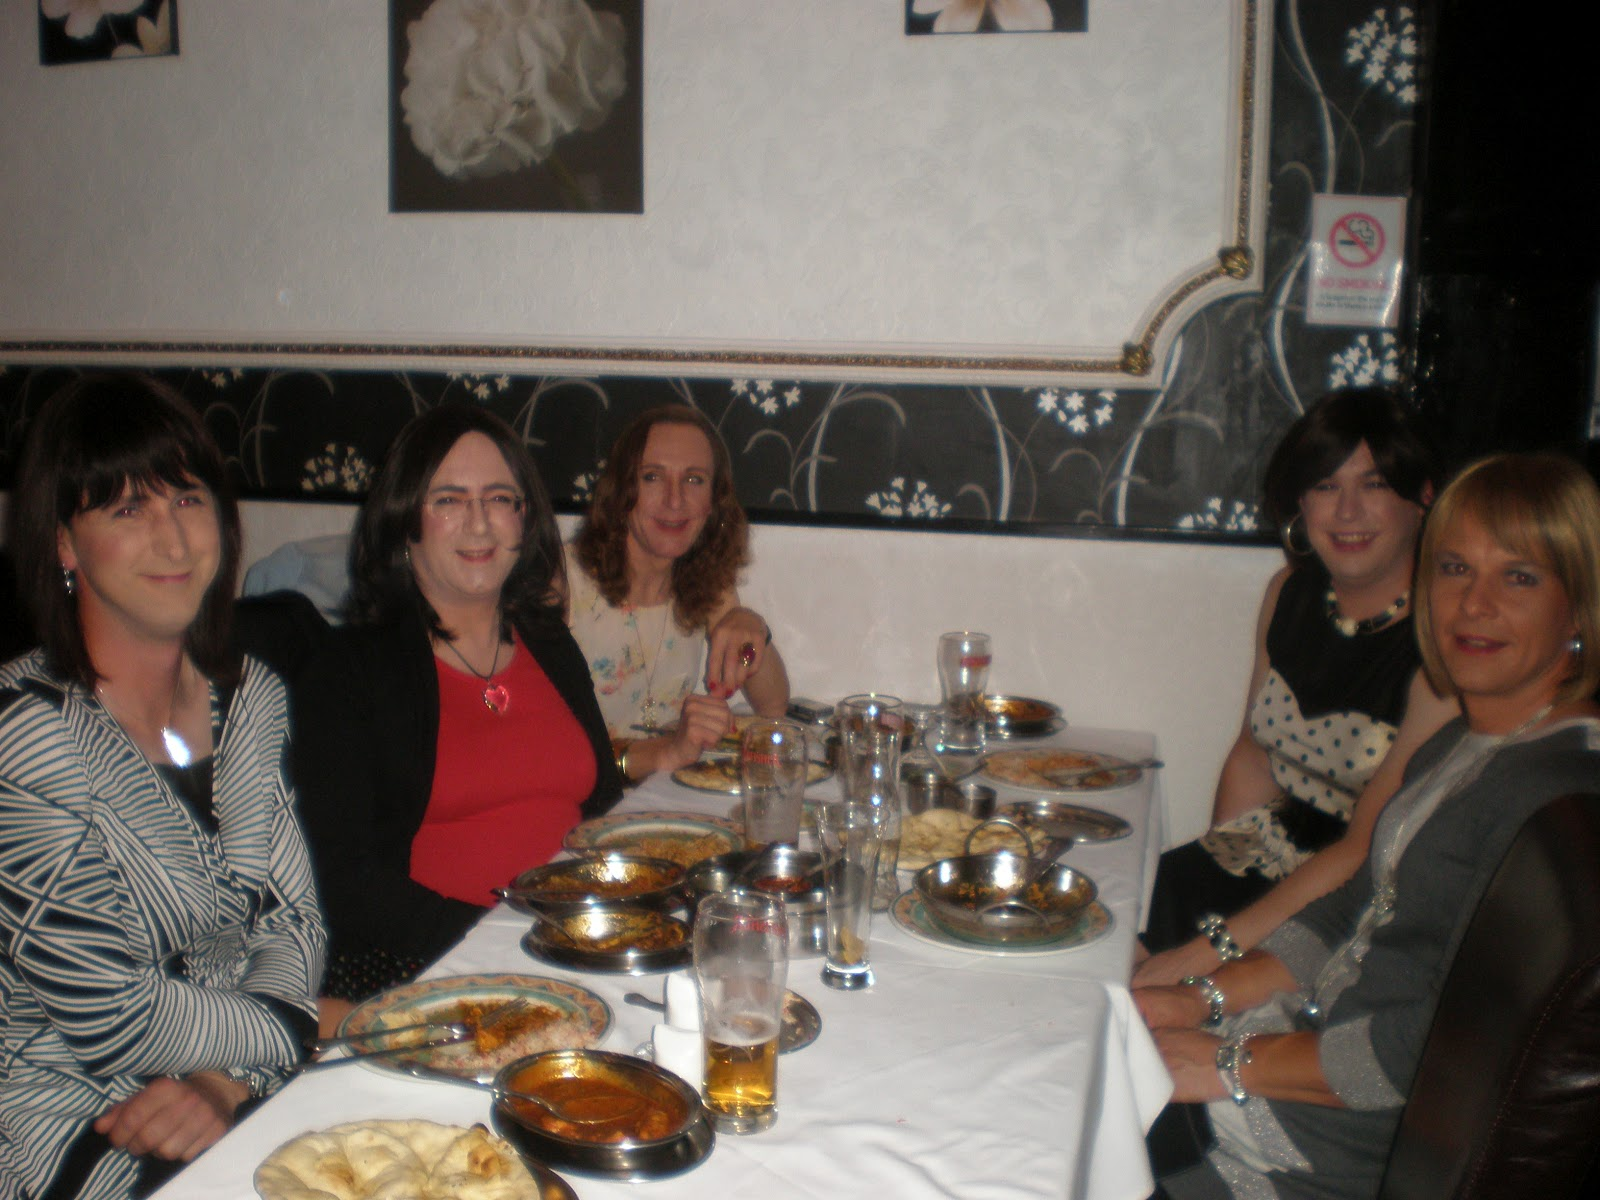 Good food and good company. At Noor Jahan with some of my closest friends.